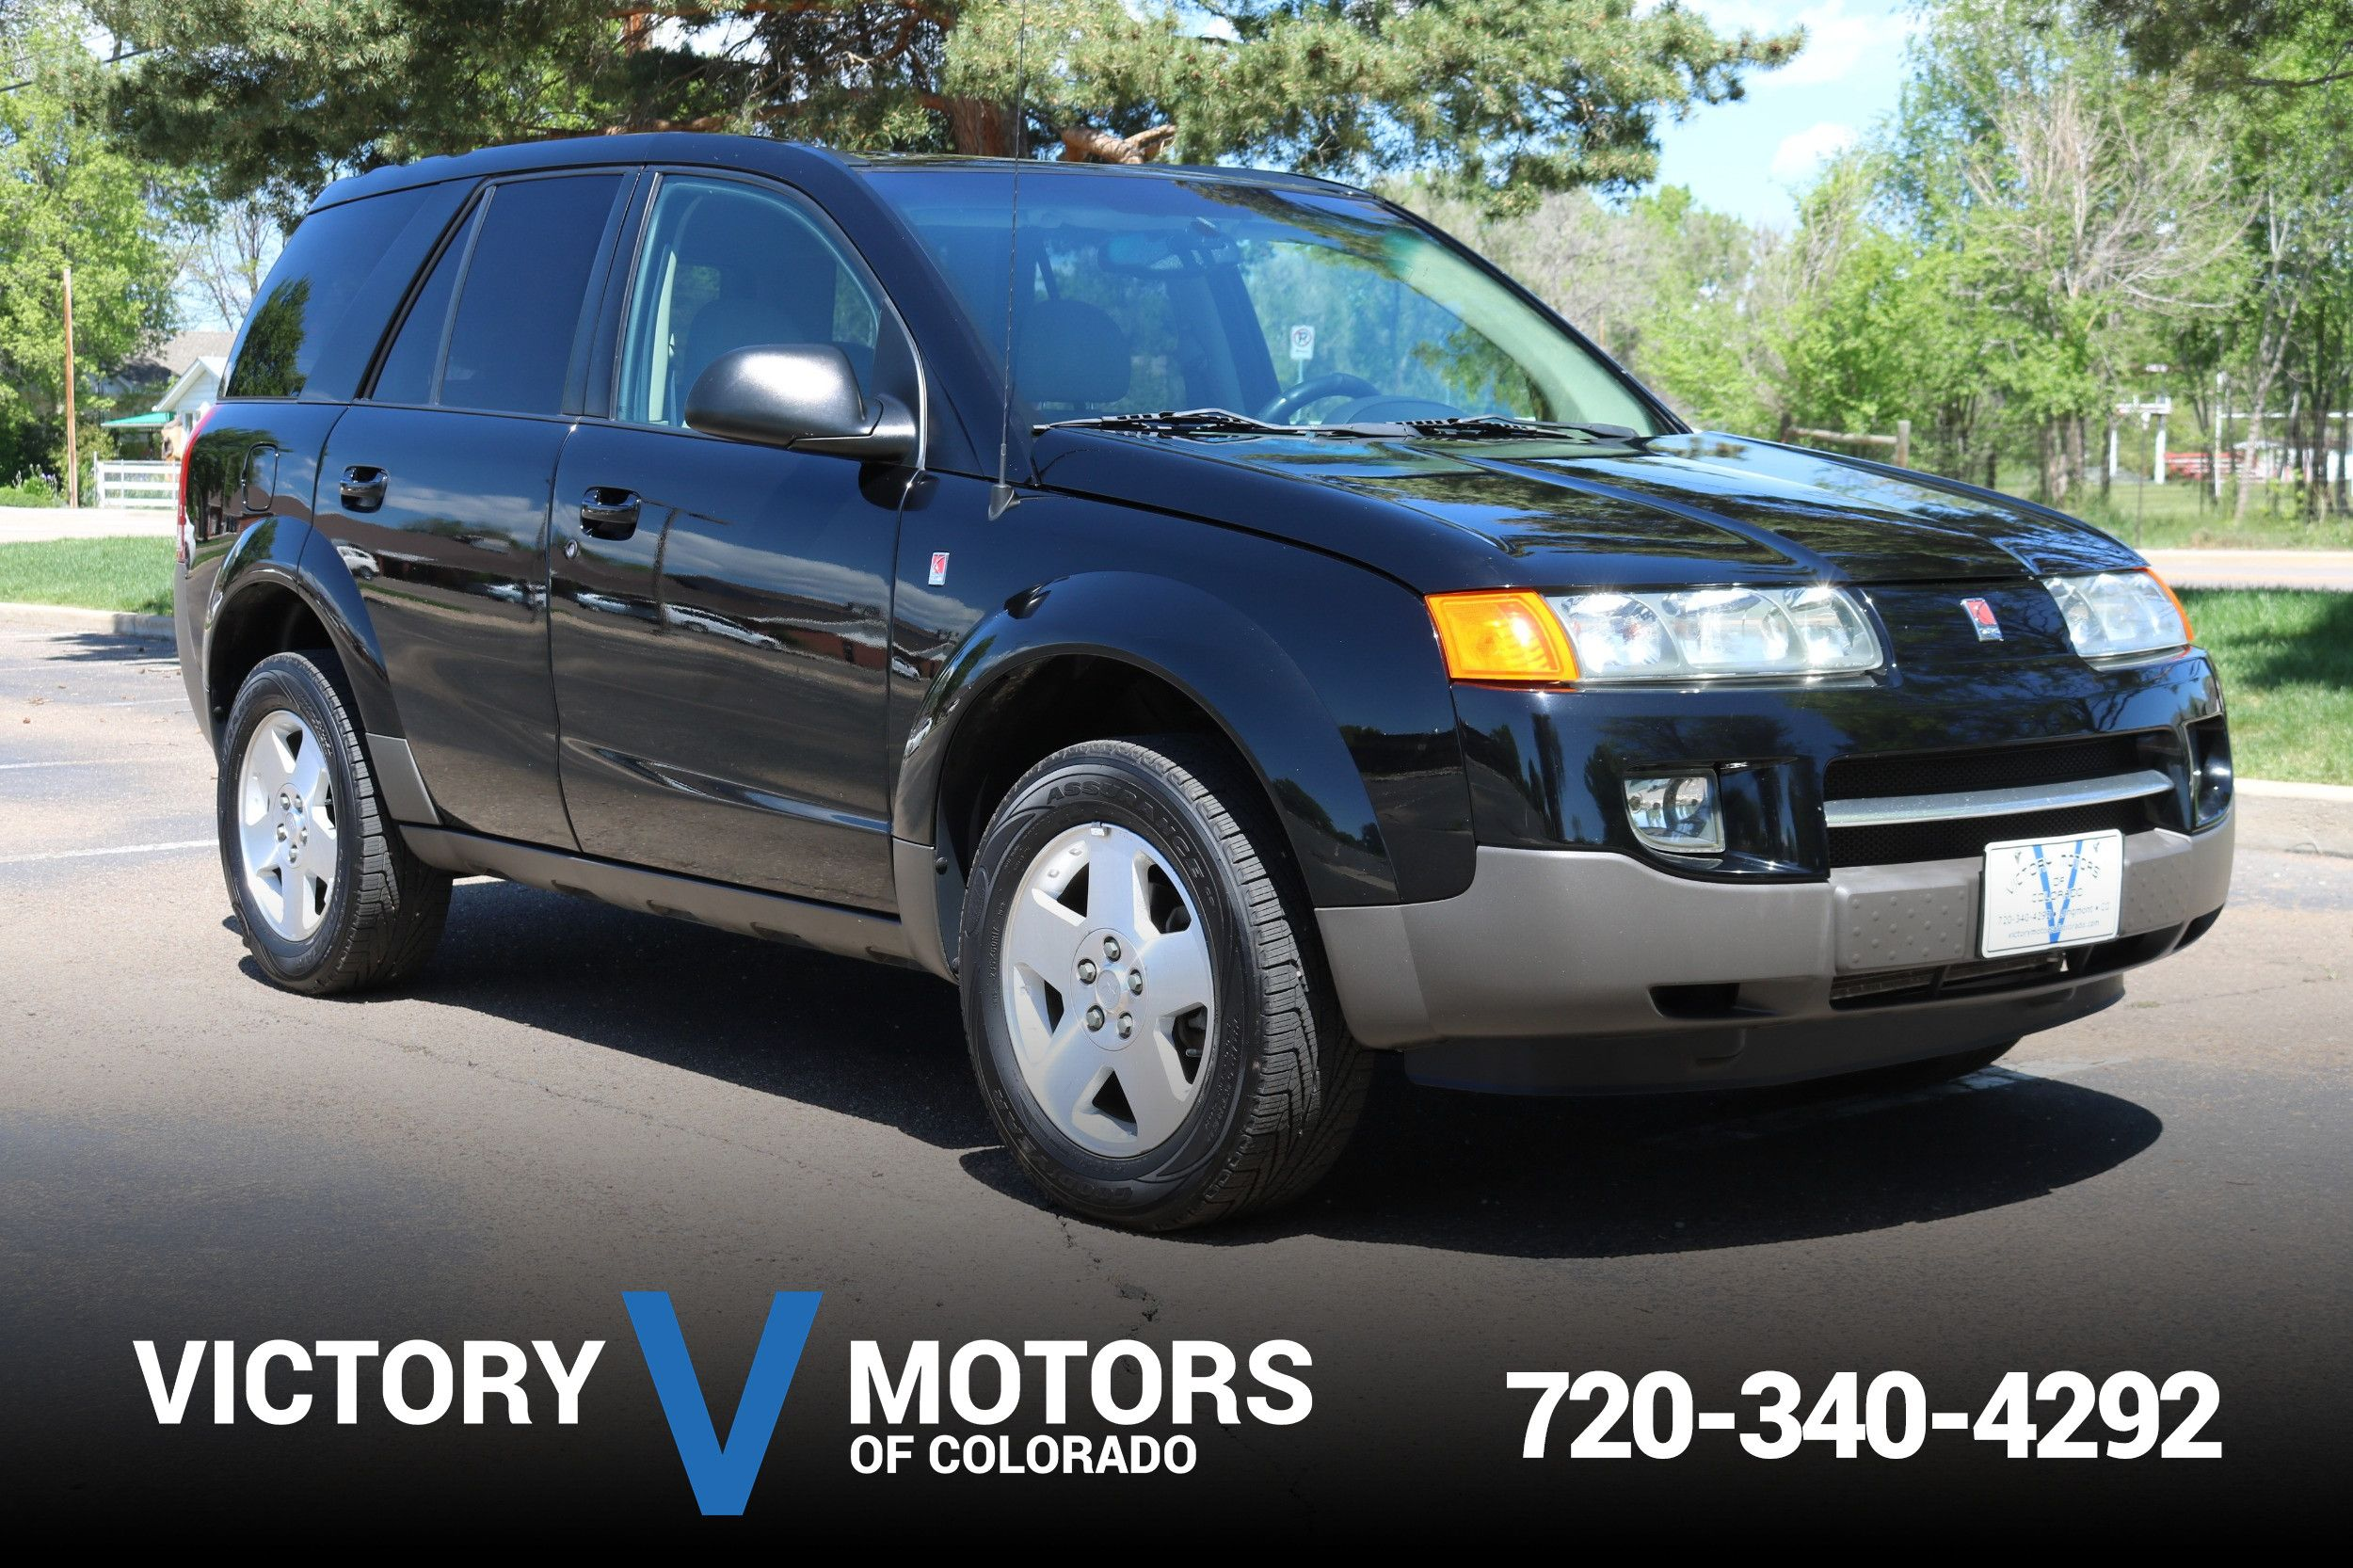 2004 saturn vue awd victory motors of colorado rh victorymotorsofcolorado com